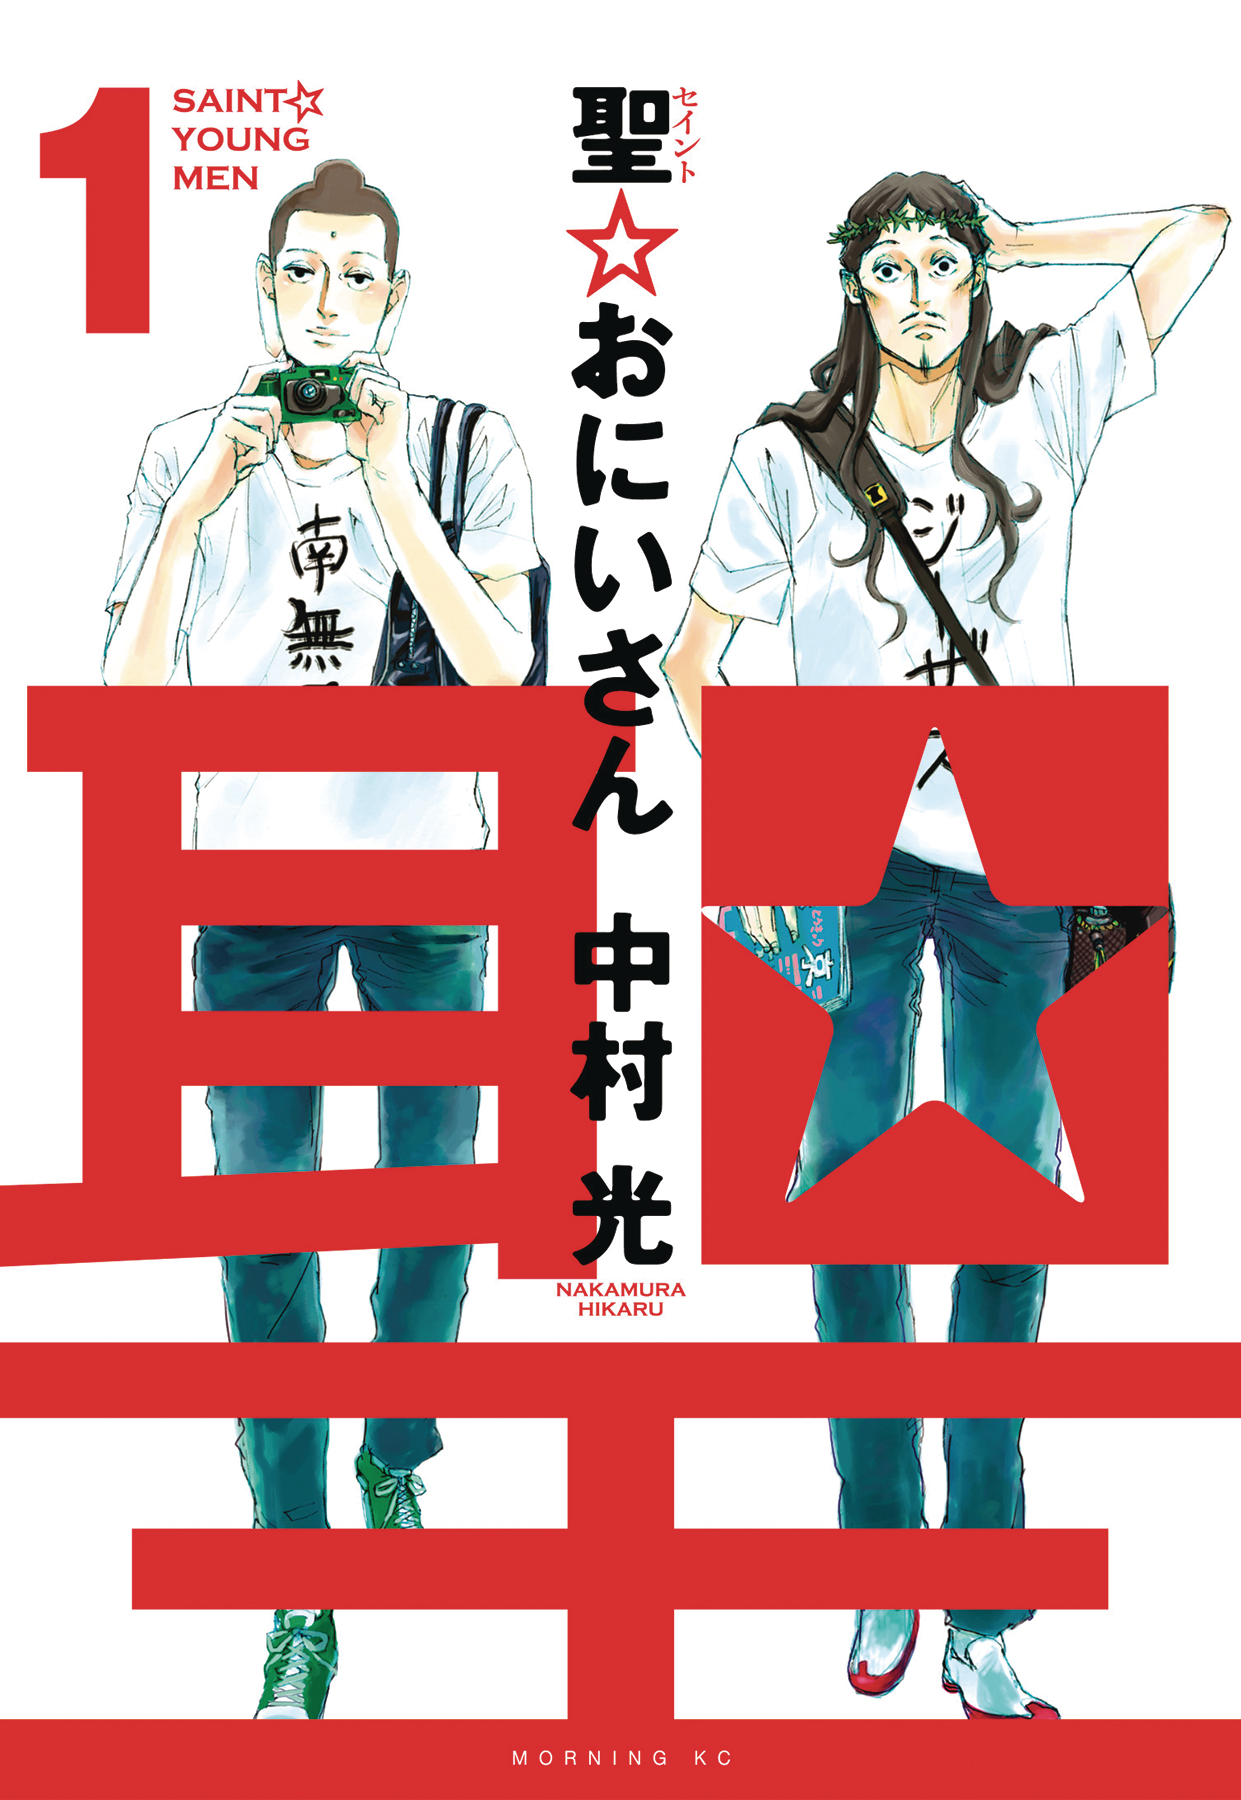 SAINT YOUNG MEN HC GN VOL 01 (MR)